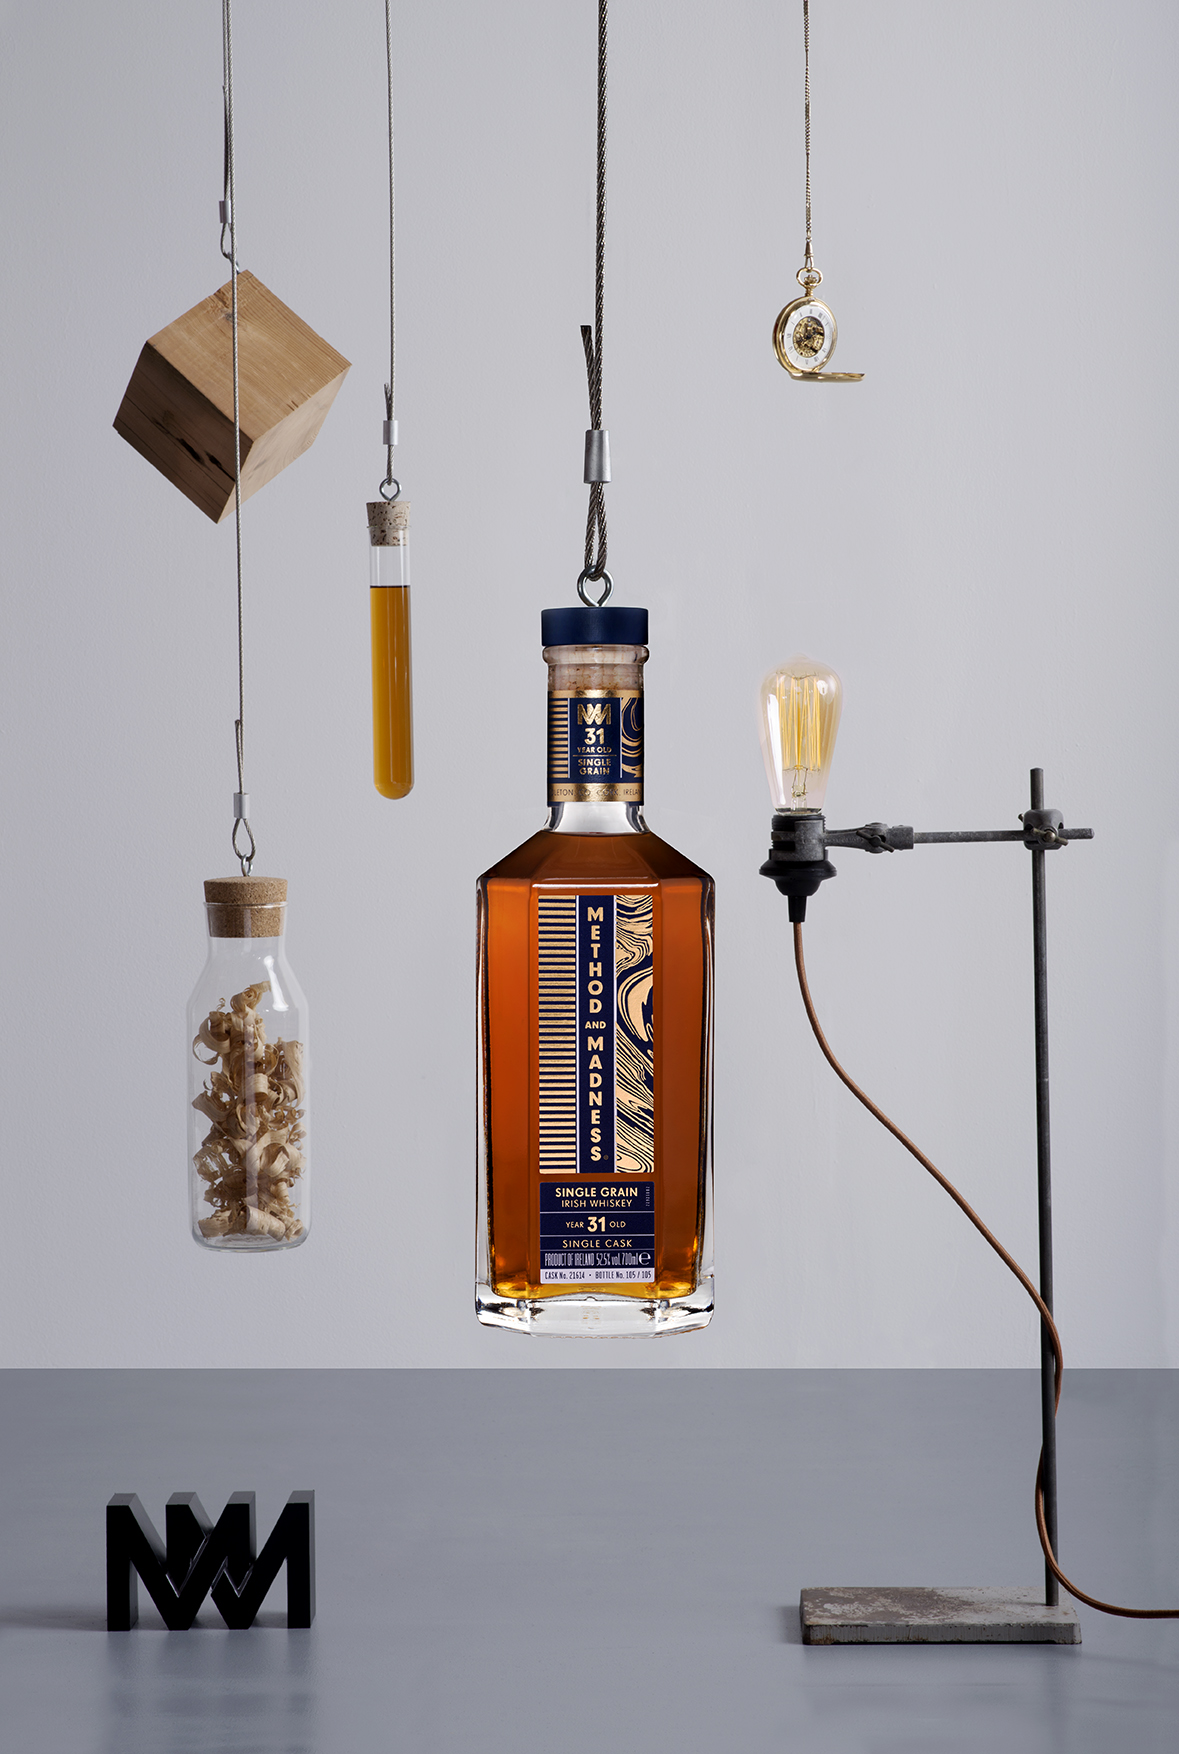 Client: Pernod Ricard: METHOD AND MADNESS